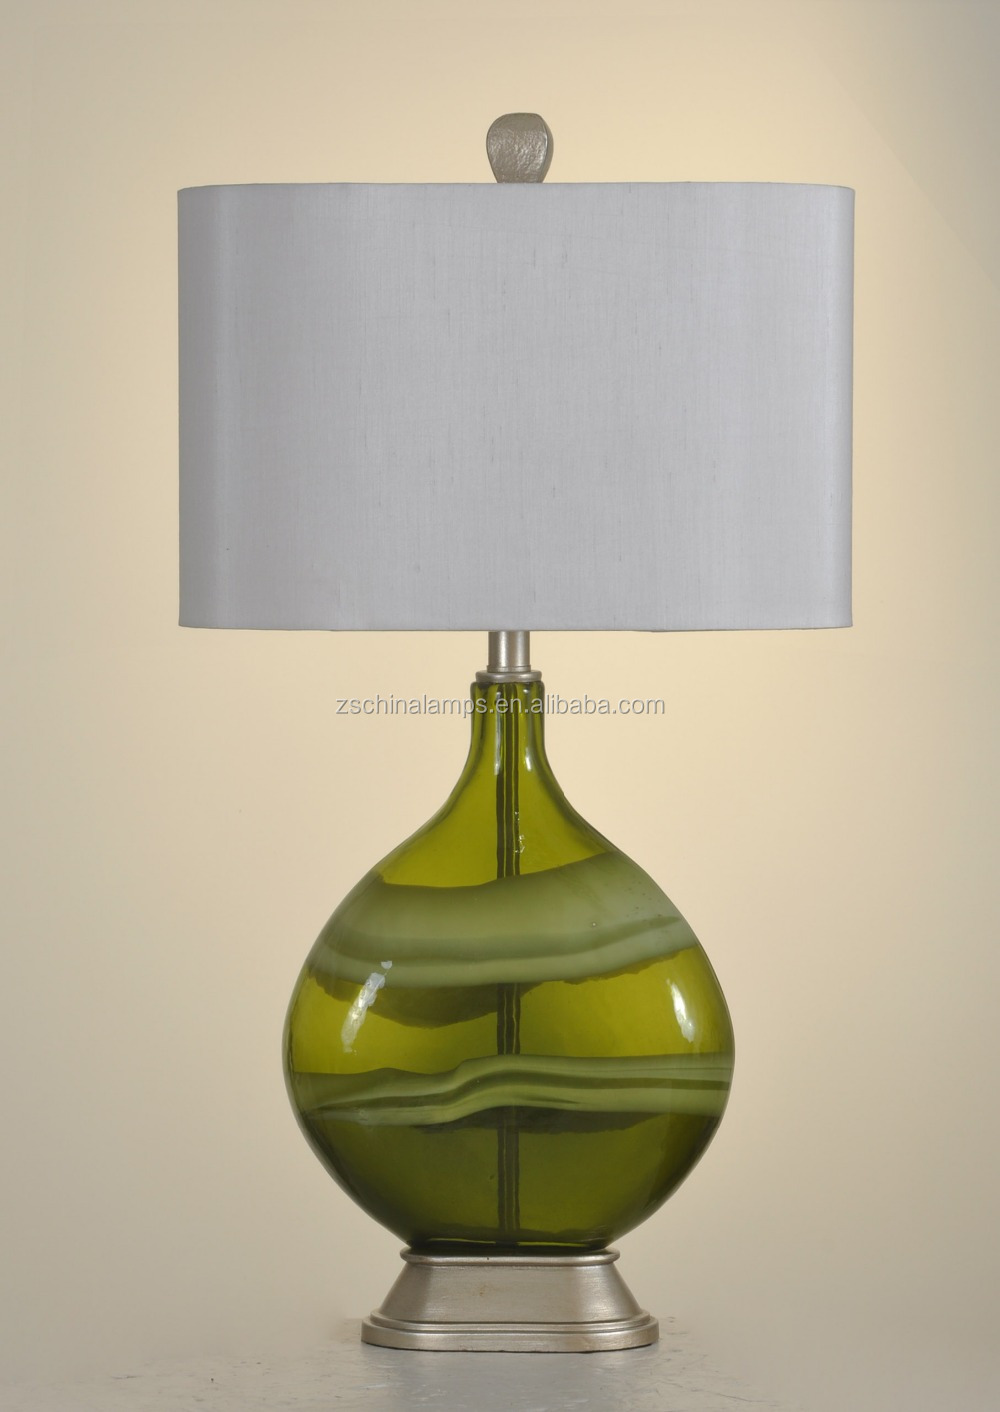 Wholesale modern style thicken base green glass table lamp for Table lamp bases wholesale